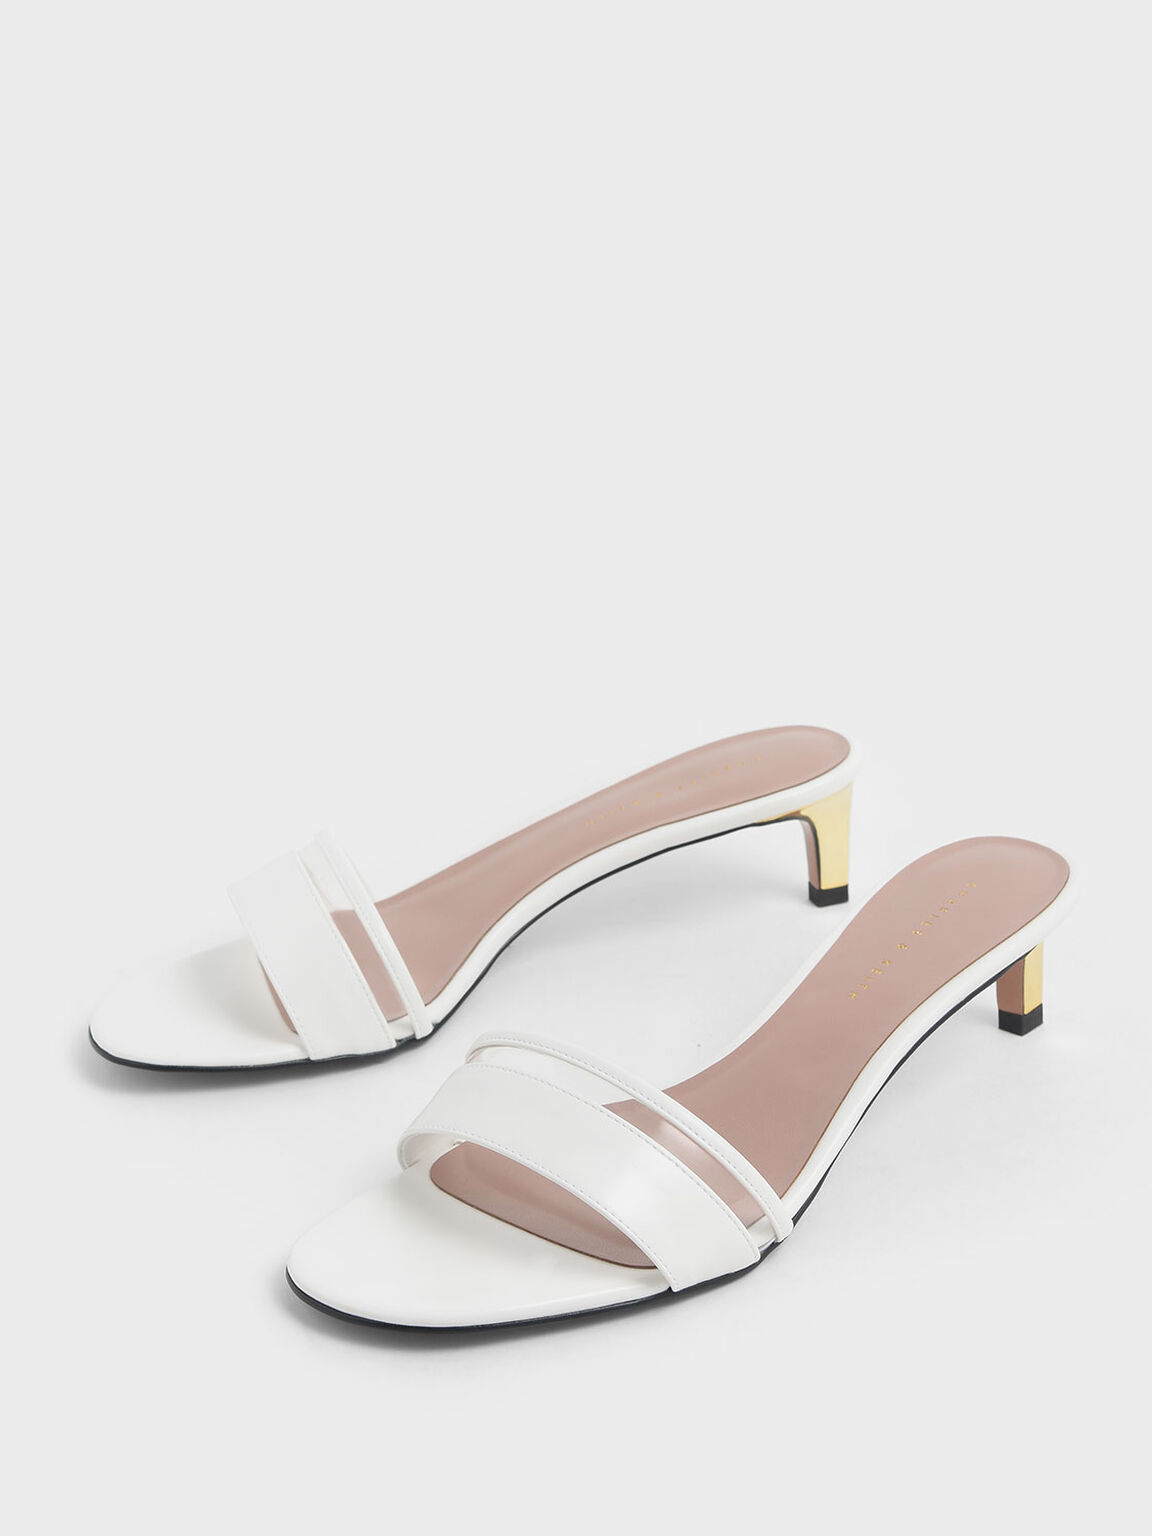 Clear Strap Kitten Heel Slide Sandals, White, hi-res